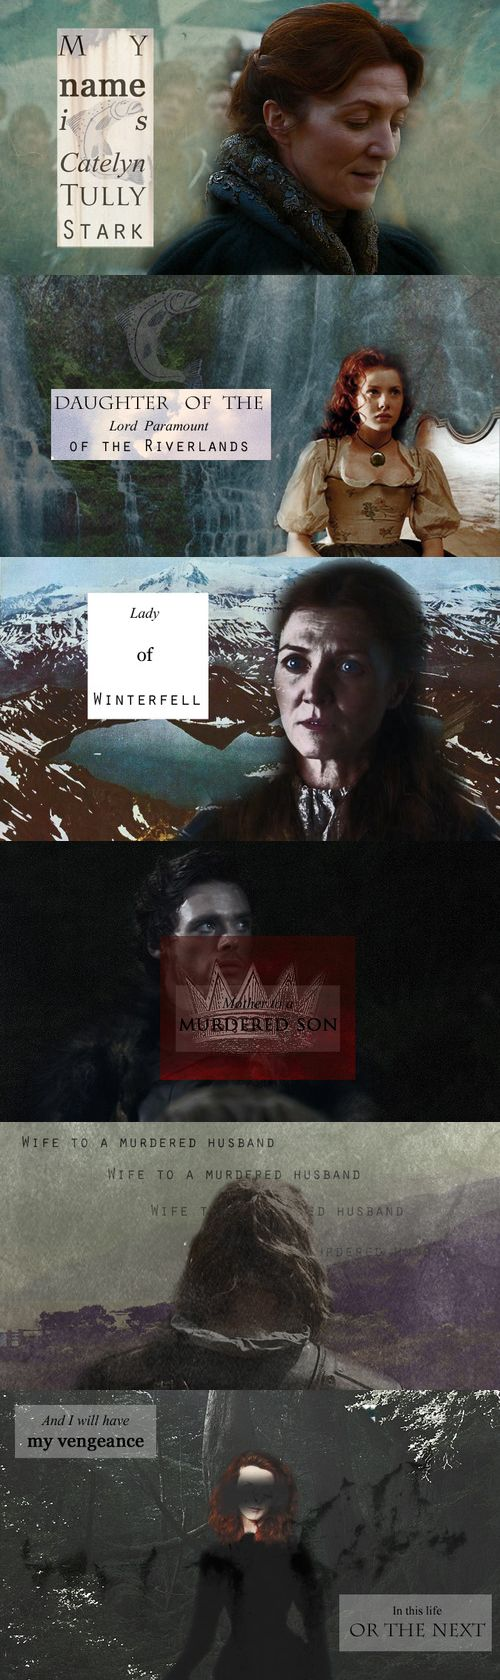 My name is Catelyn Tully Stark. Daughter of the Lord Paramount of the Riverlands. Lady of Winterfell. Mother of a murdered son. Wife to a murdered husband. And I will have my vengeance in this life or the next. #got #asoiaf